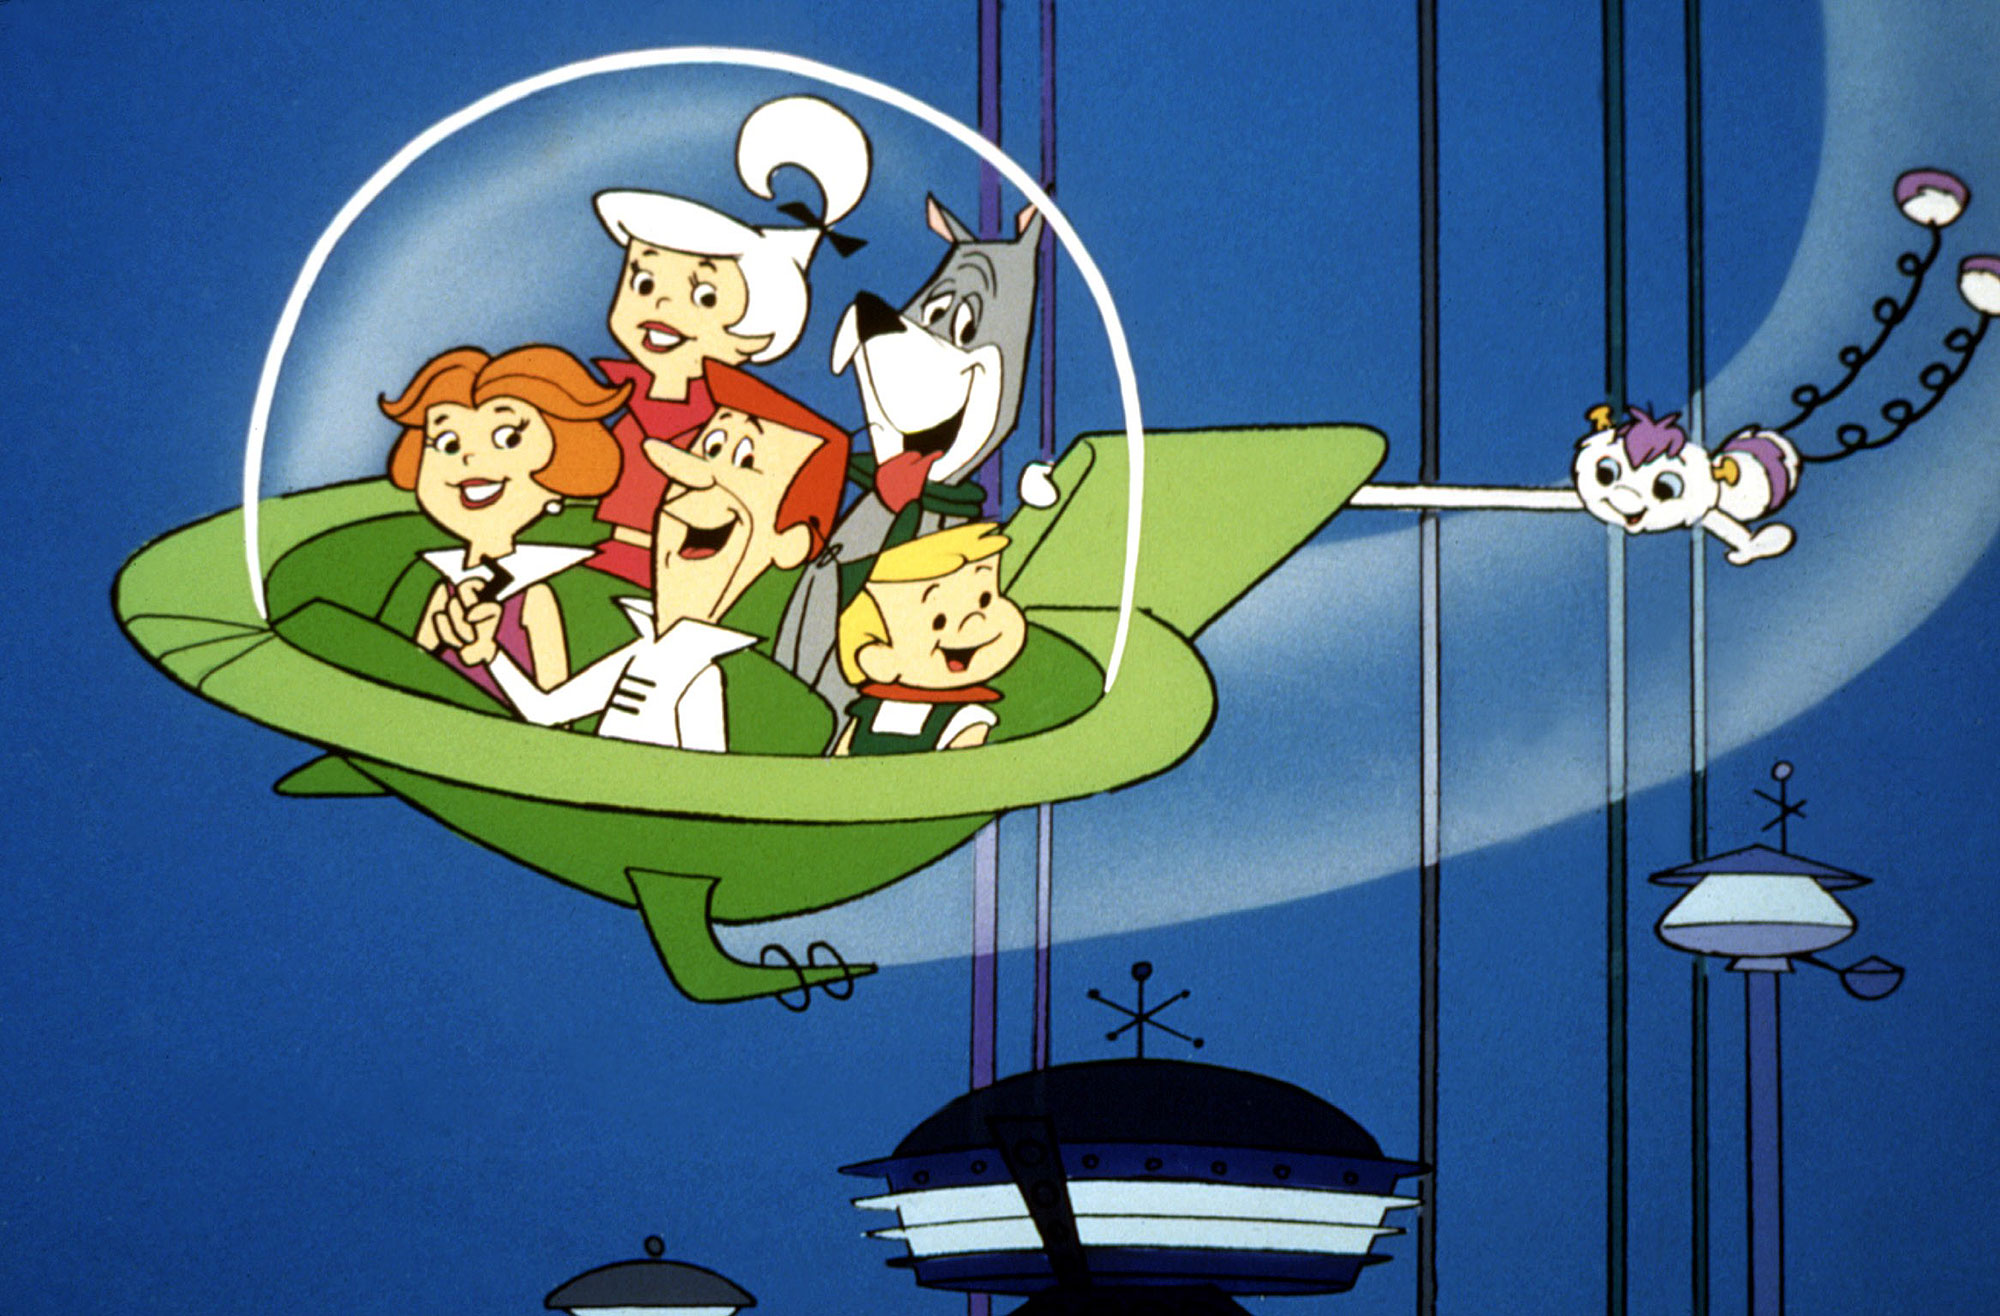 THE JETSONS, Jane, Judy, Astro, Elroy & George Jetson, 1962-87